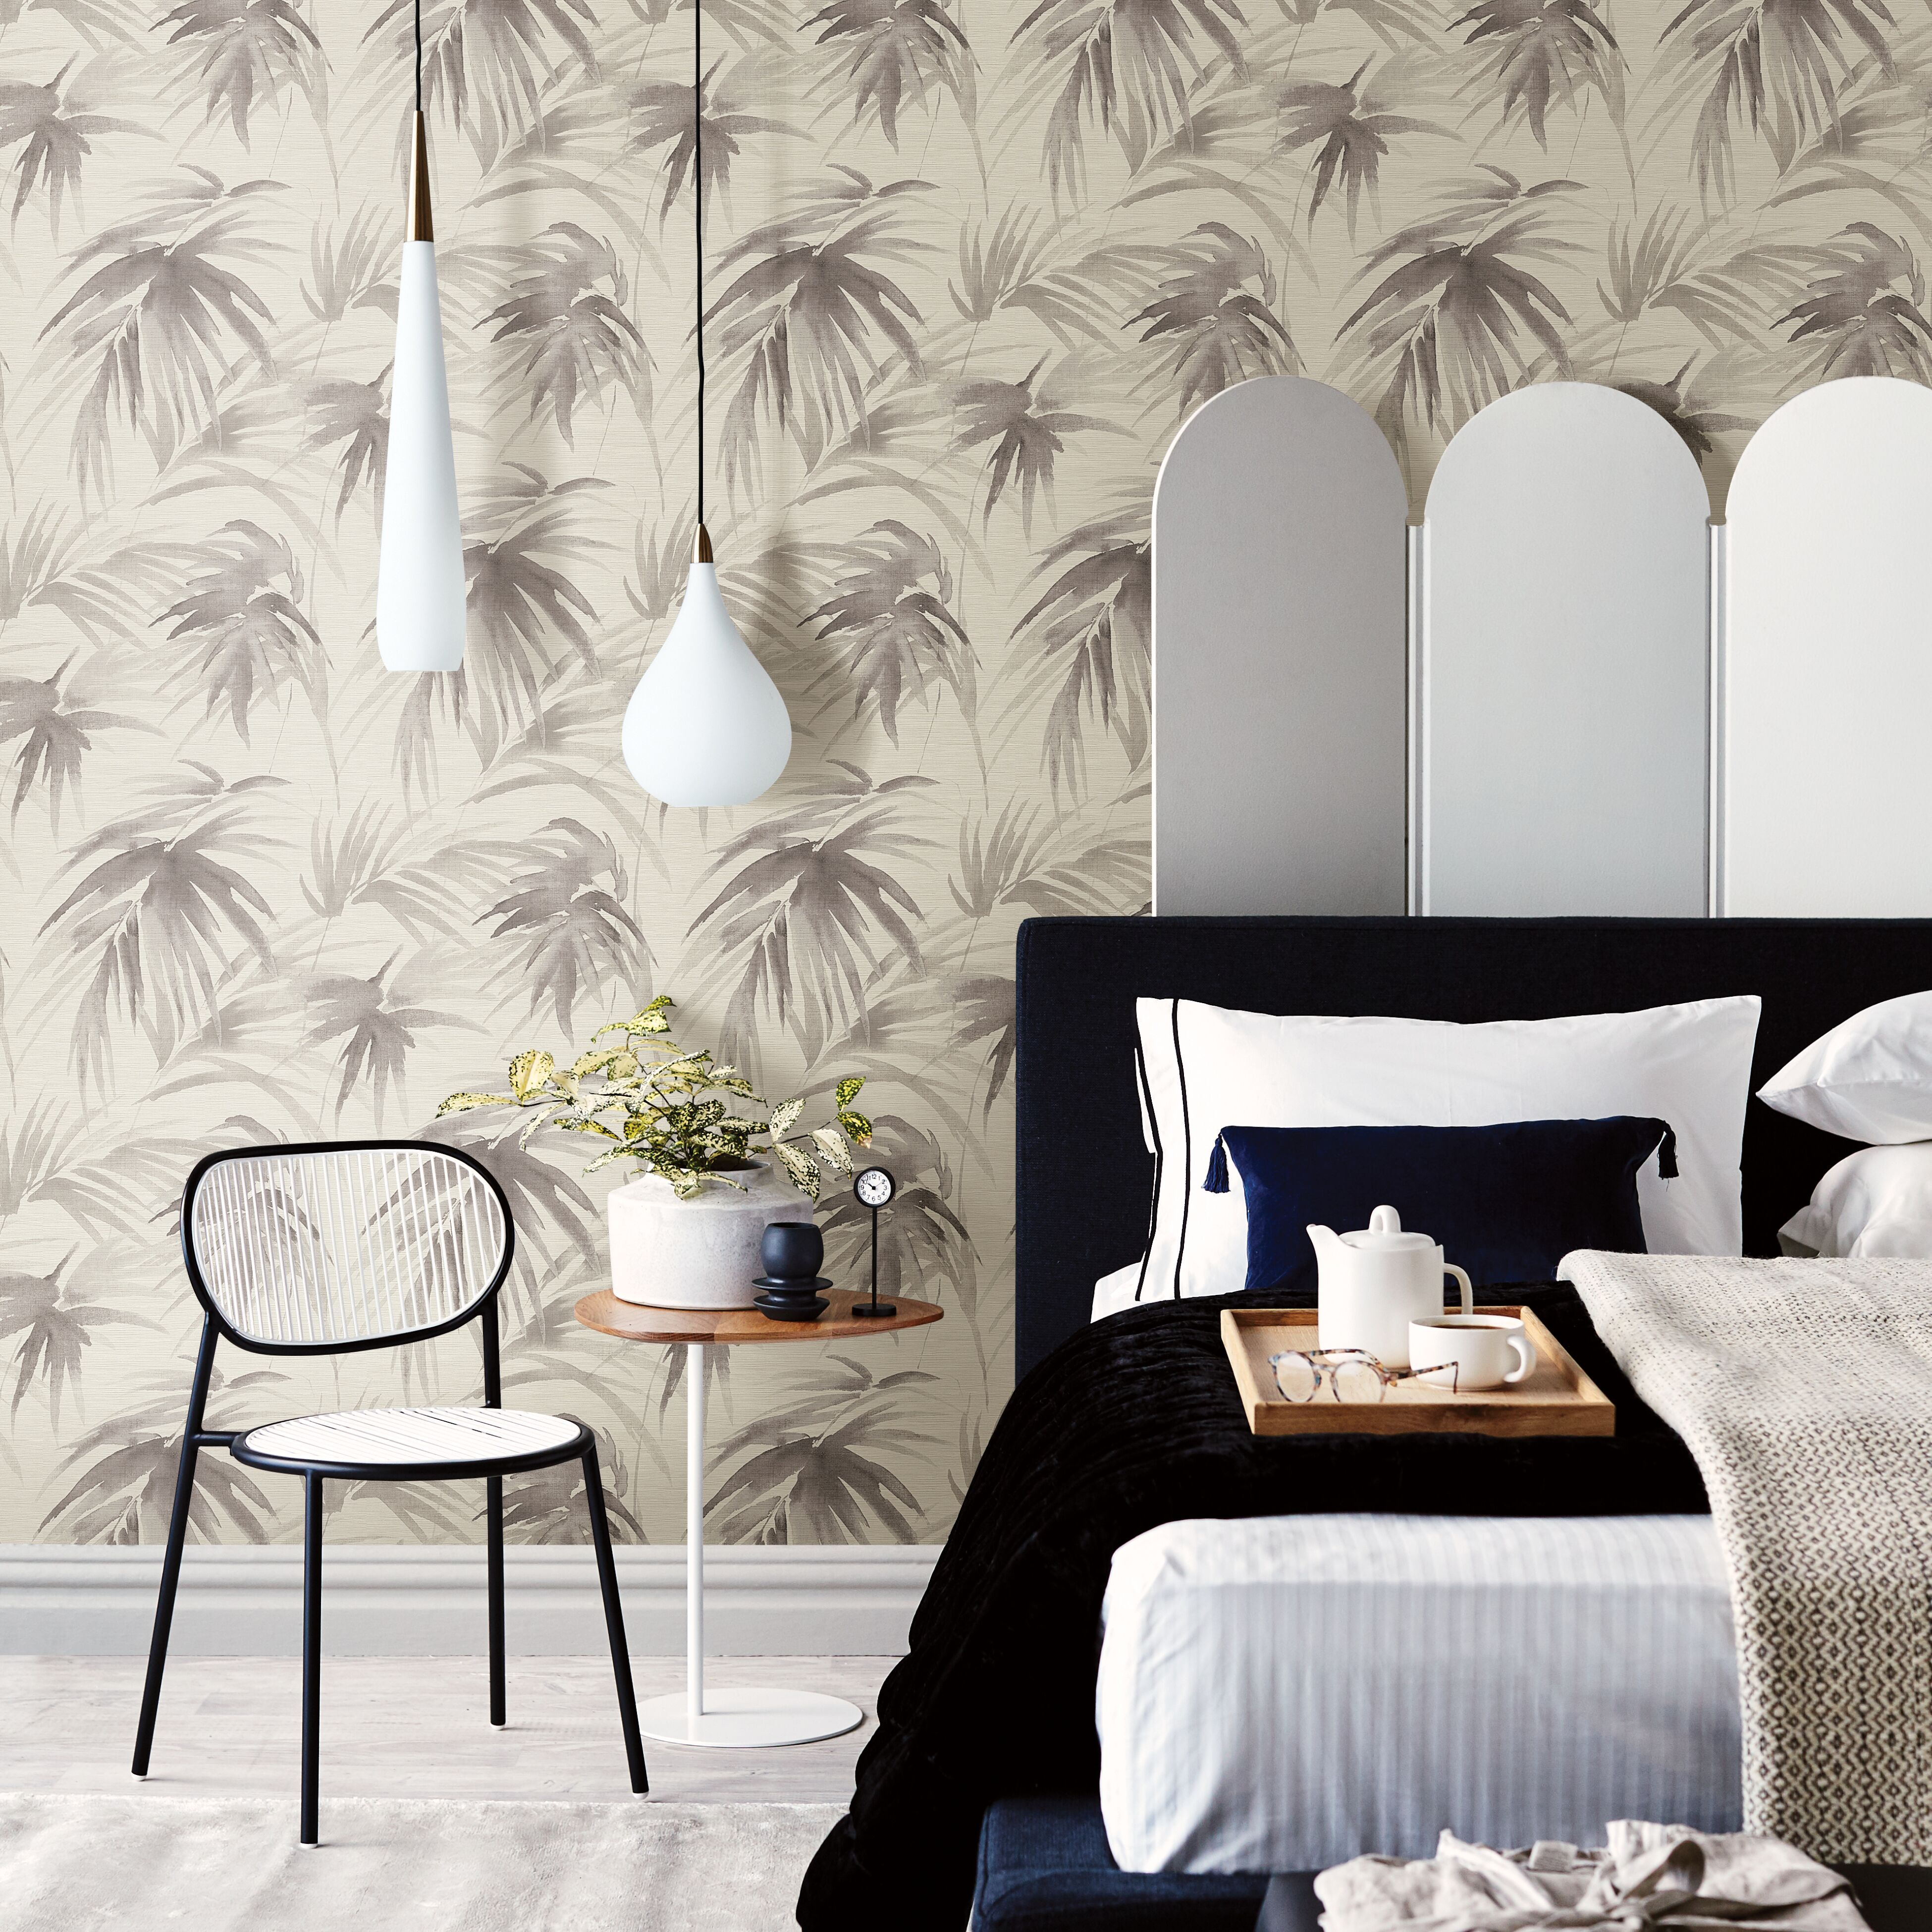 The Property Brothers Launch Scott Living Wallpaper Collection With A-Street Prints